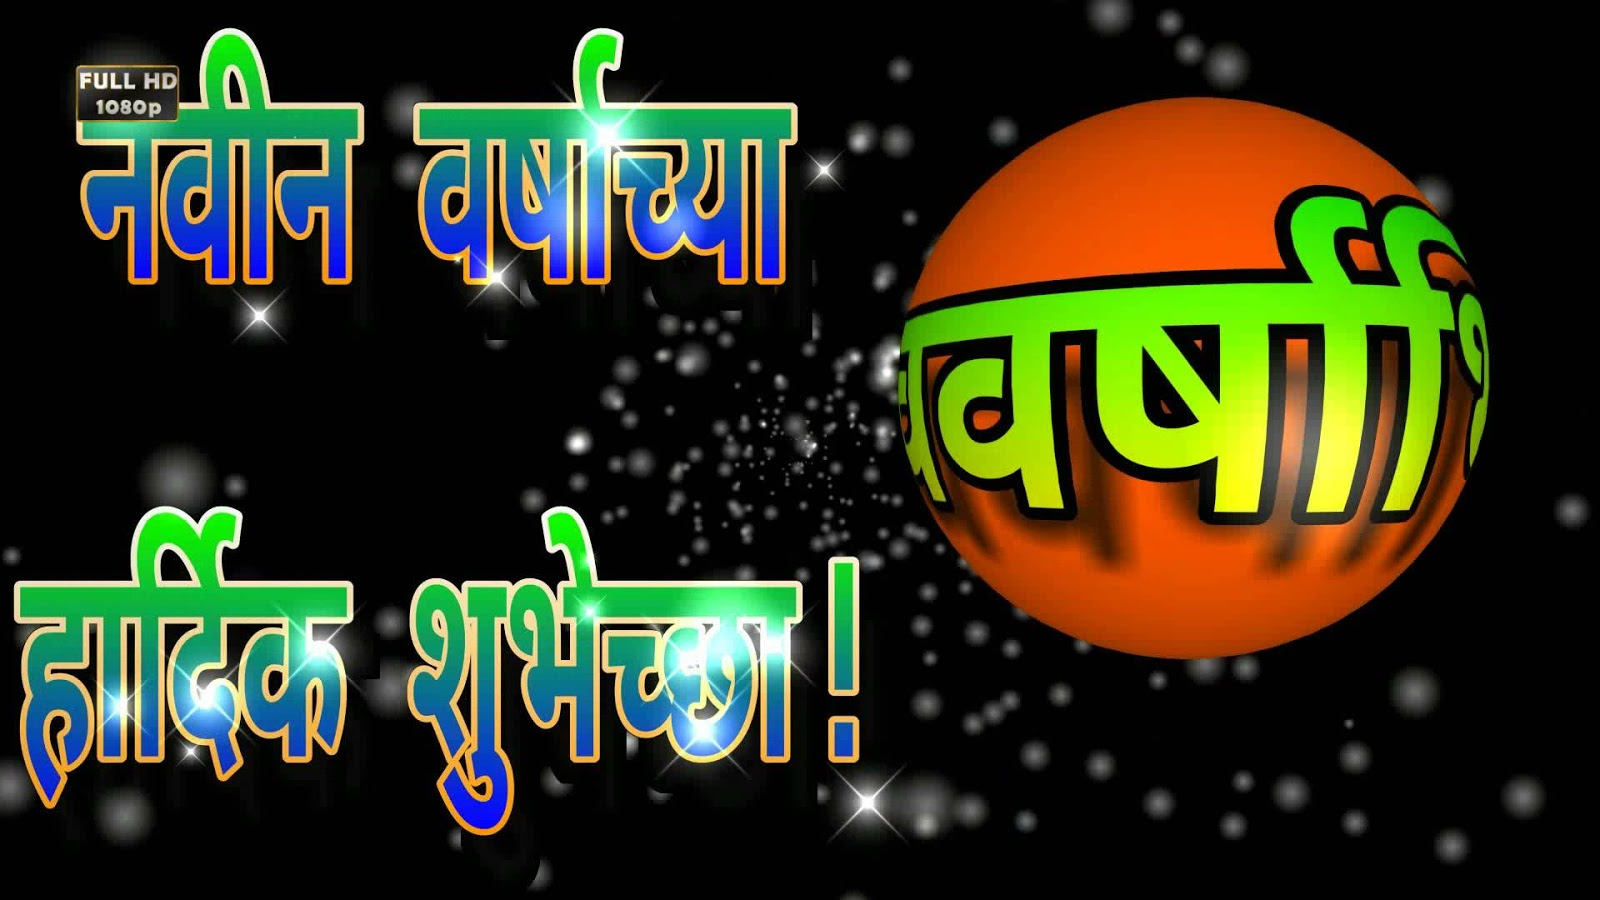 Happy New Year 2018 Hindi Greetings New Year 2018 Greetings In